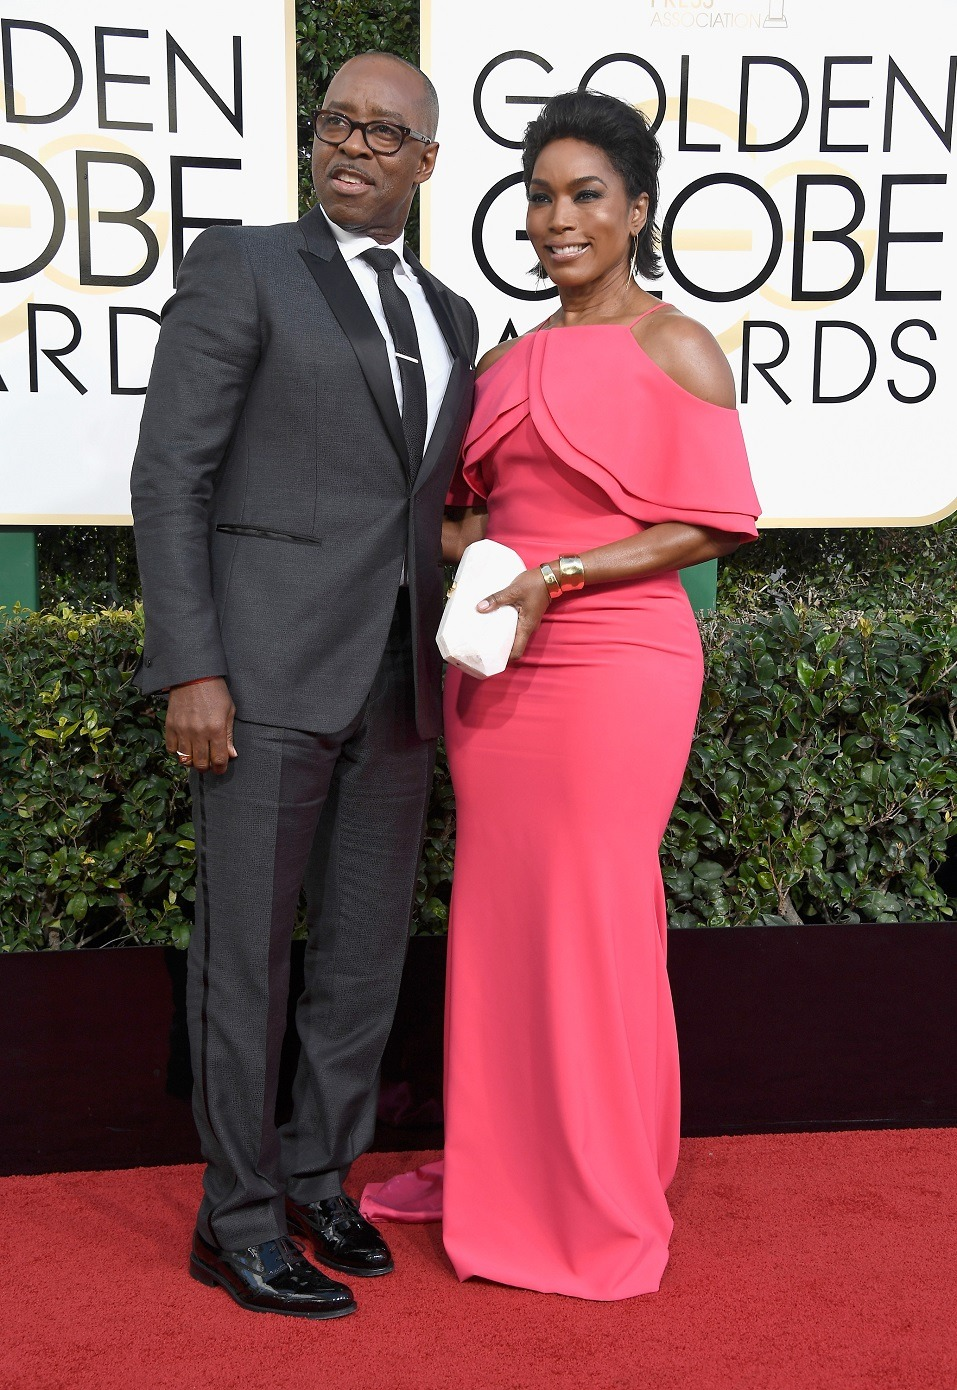 Actors Courtney B. Vance (L) and Angela Bassett attend the 74th Annual Golden Globe Awards